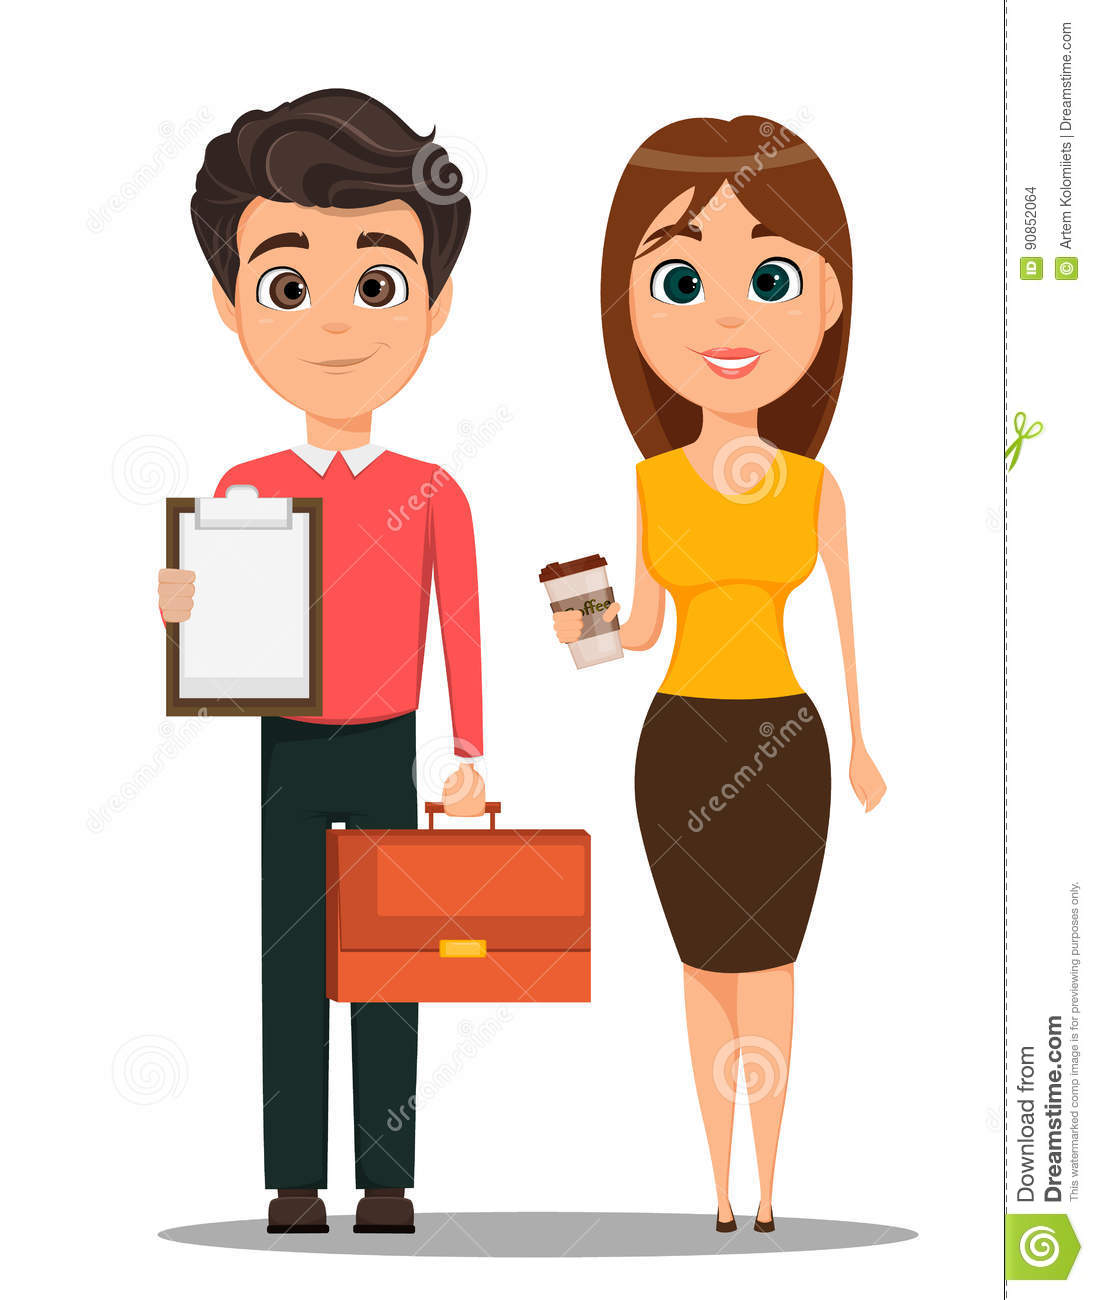 business-man-business-woman-cartoon-characters-young-smiling-people-smart-casual-clothes-holding-document-case-one-90852064.jpg